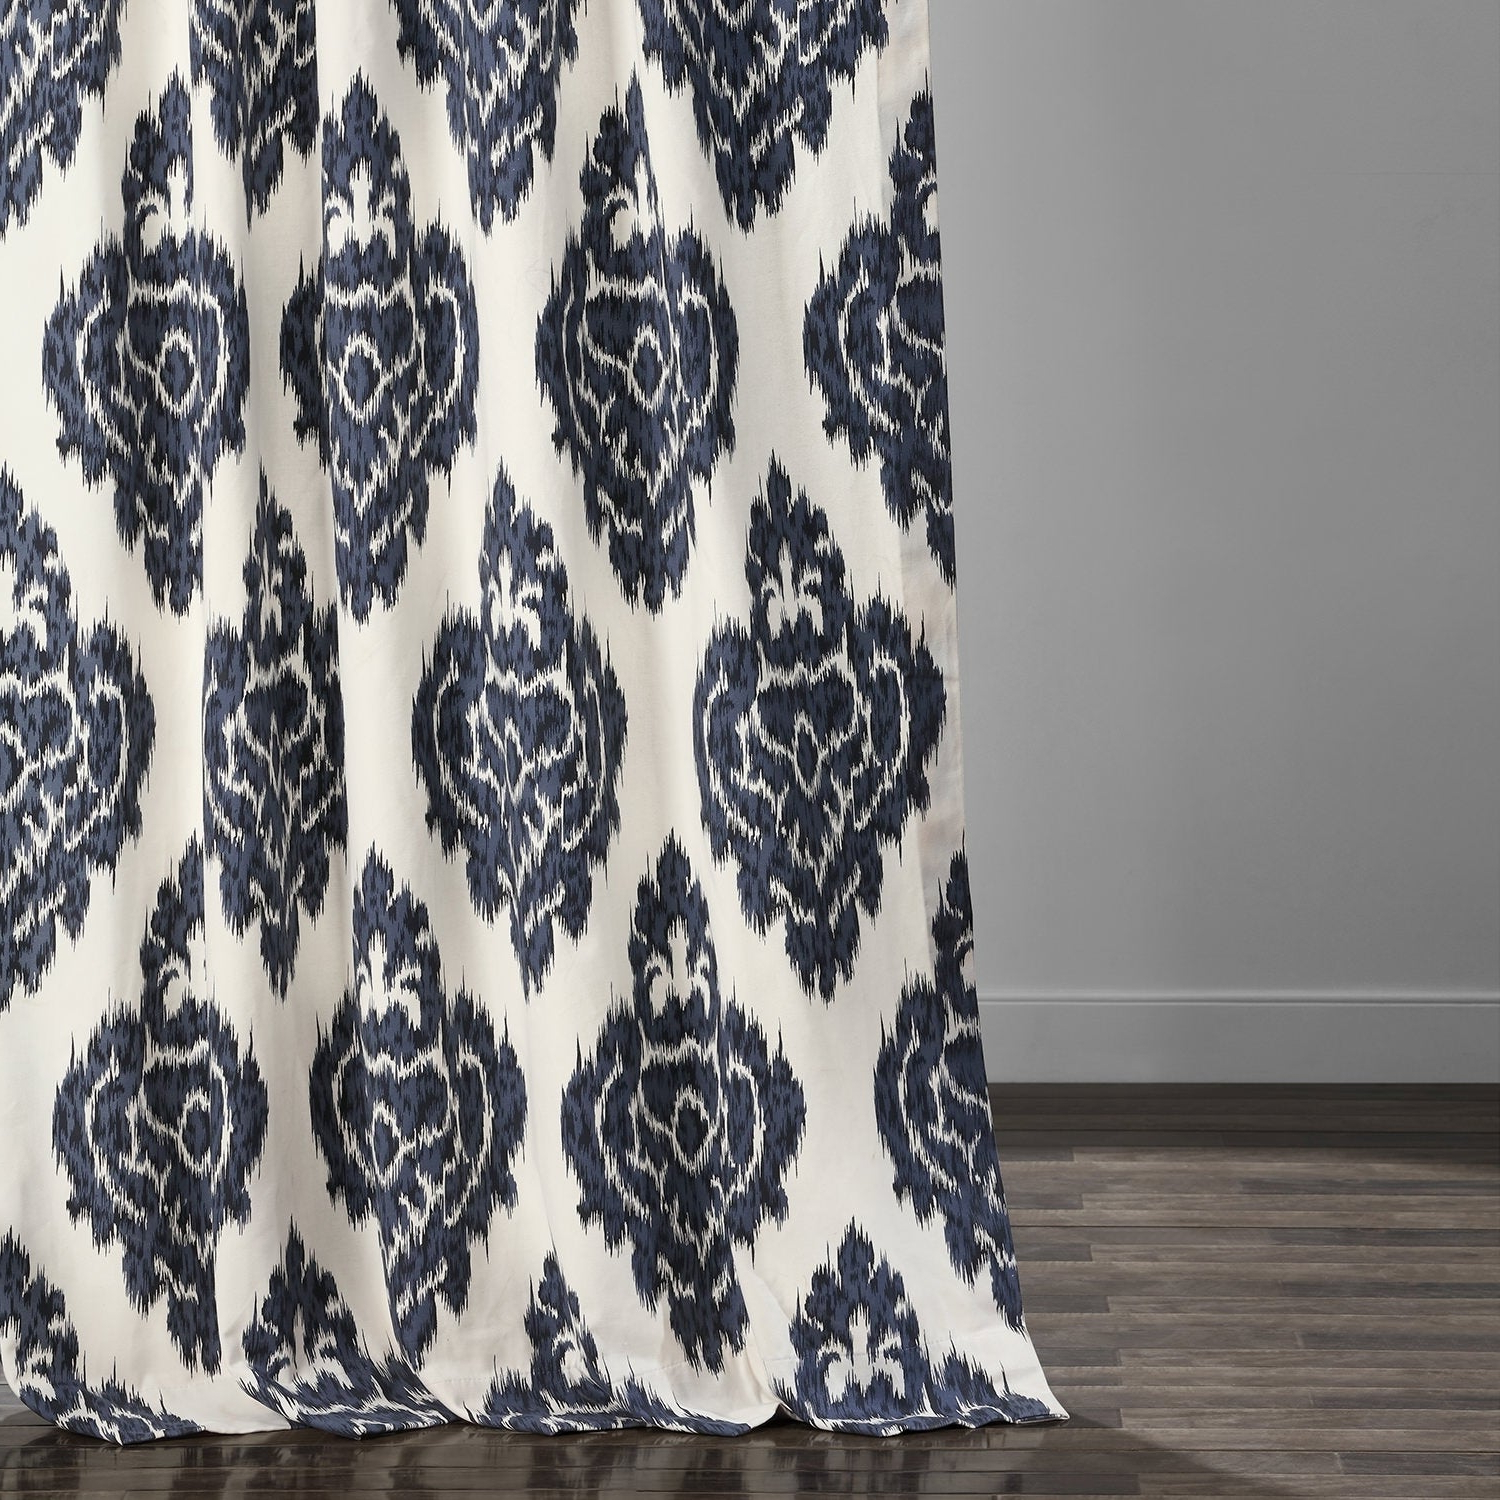 Exclusive Fabrics Ikat Blue Printed Cotton Curtain Panel With Regard To Preferred Ikat Blue Printed Cotton Curtain Panels (View 5 of 20)